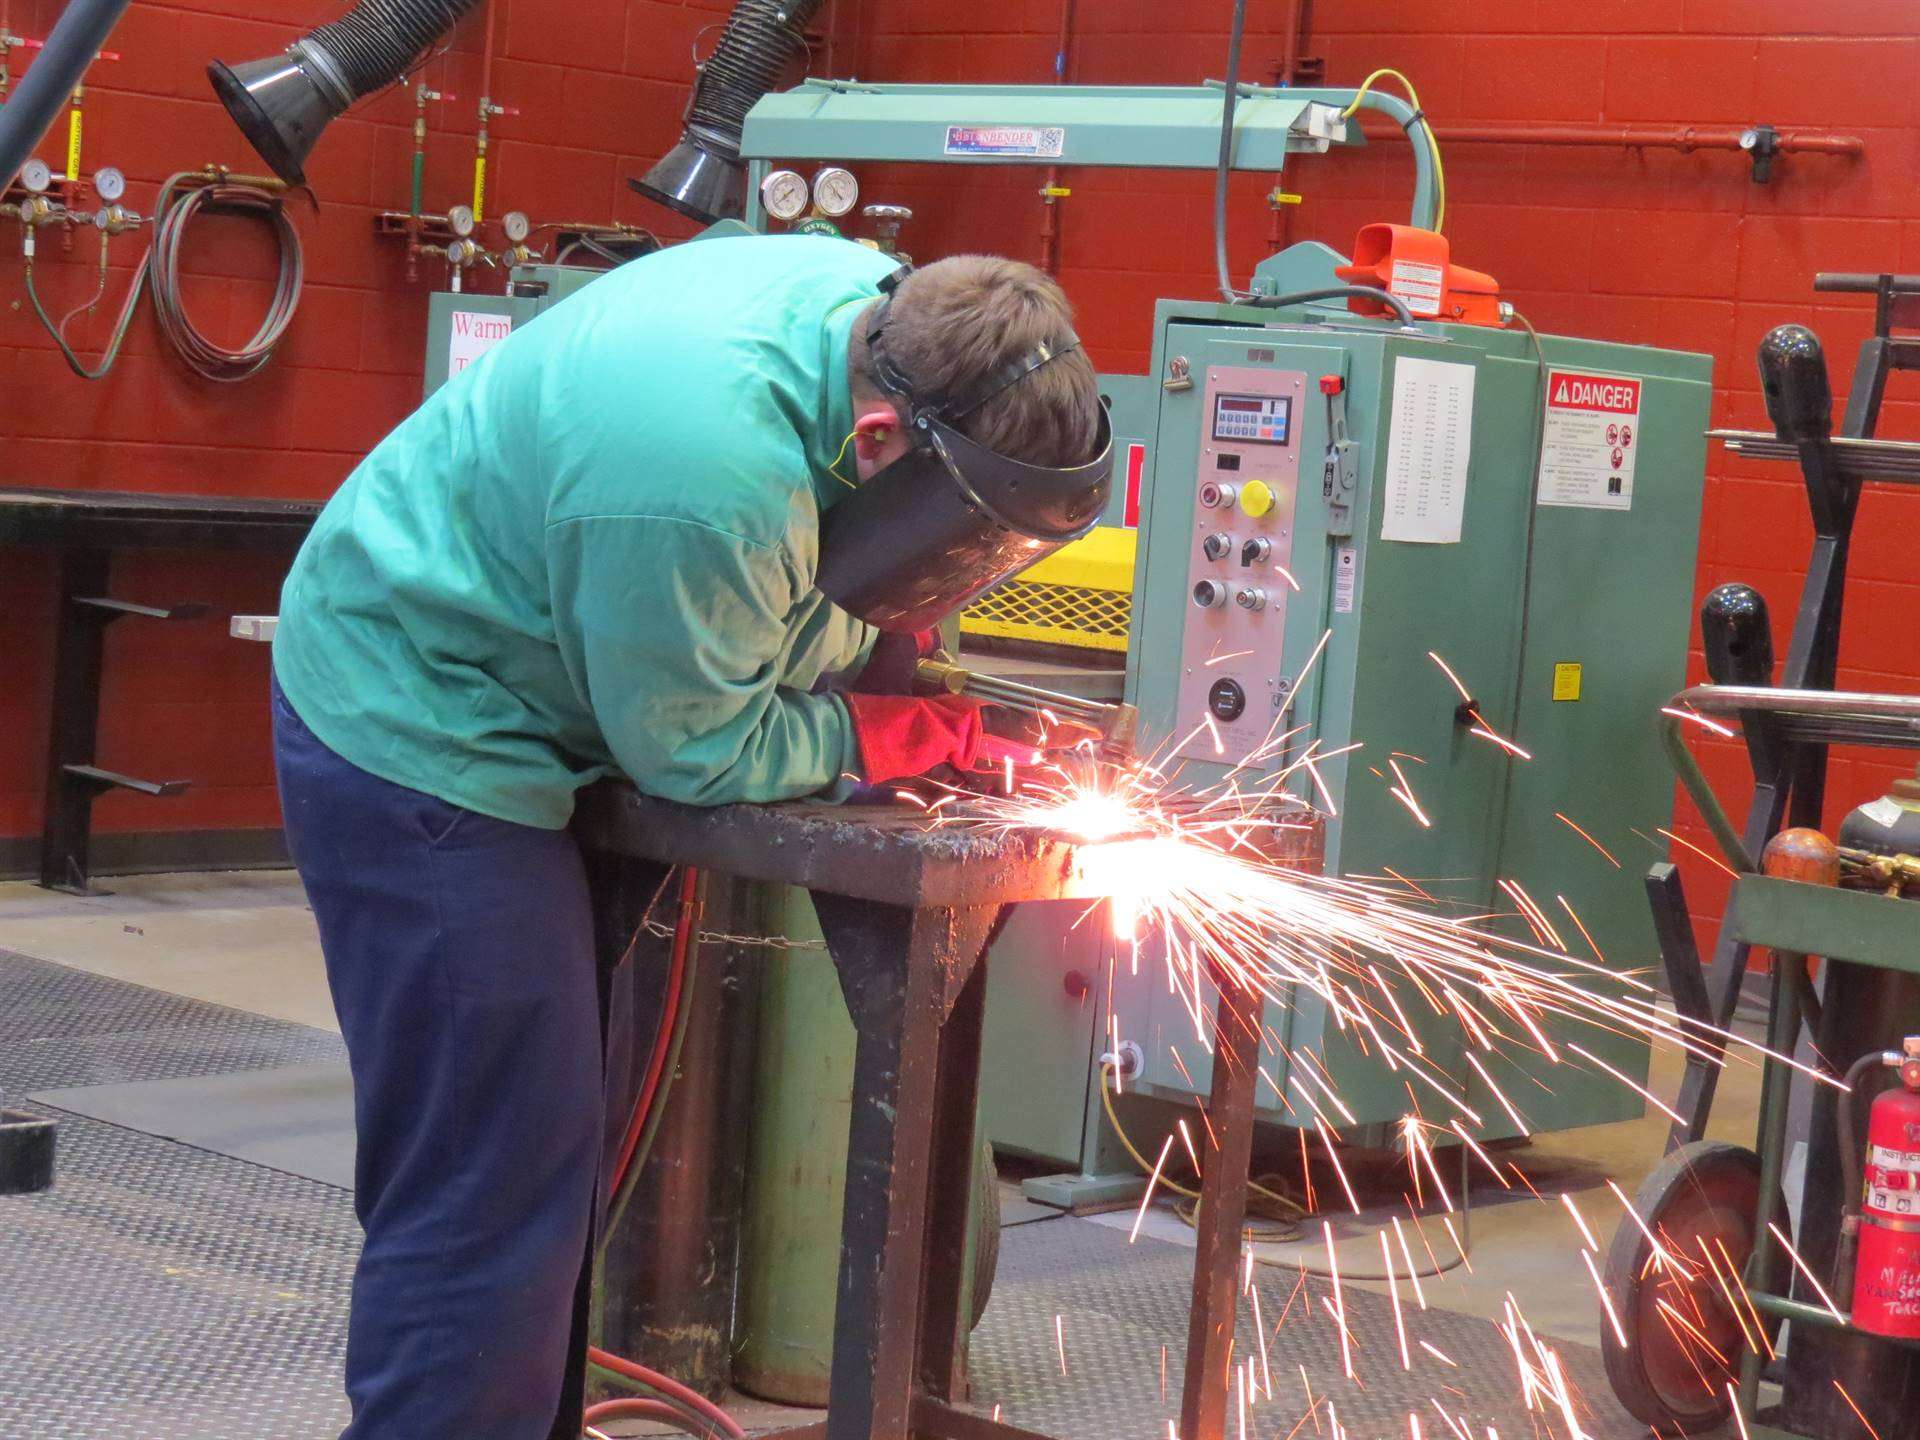 Male student cutting metal with sparks flying